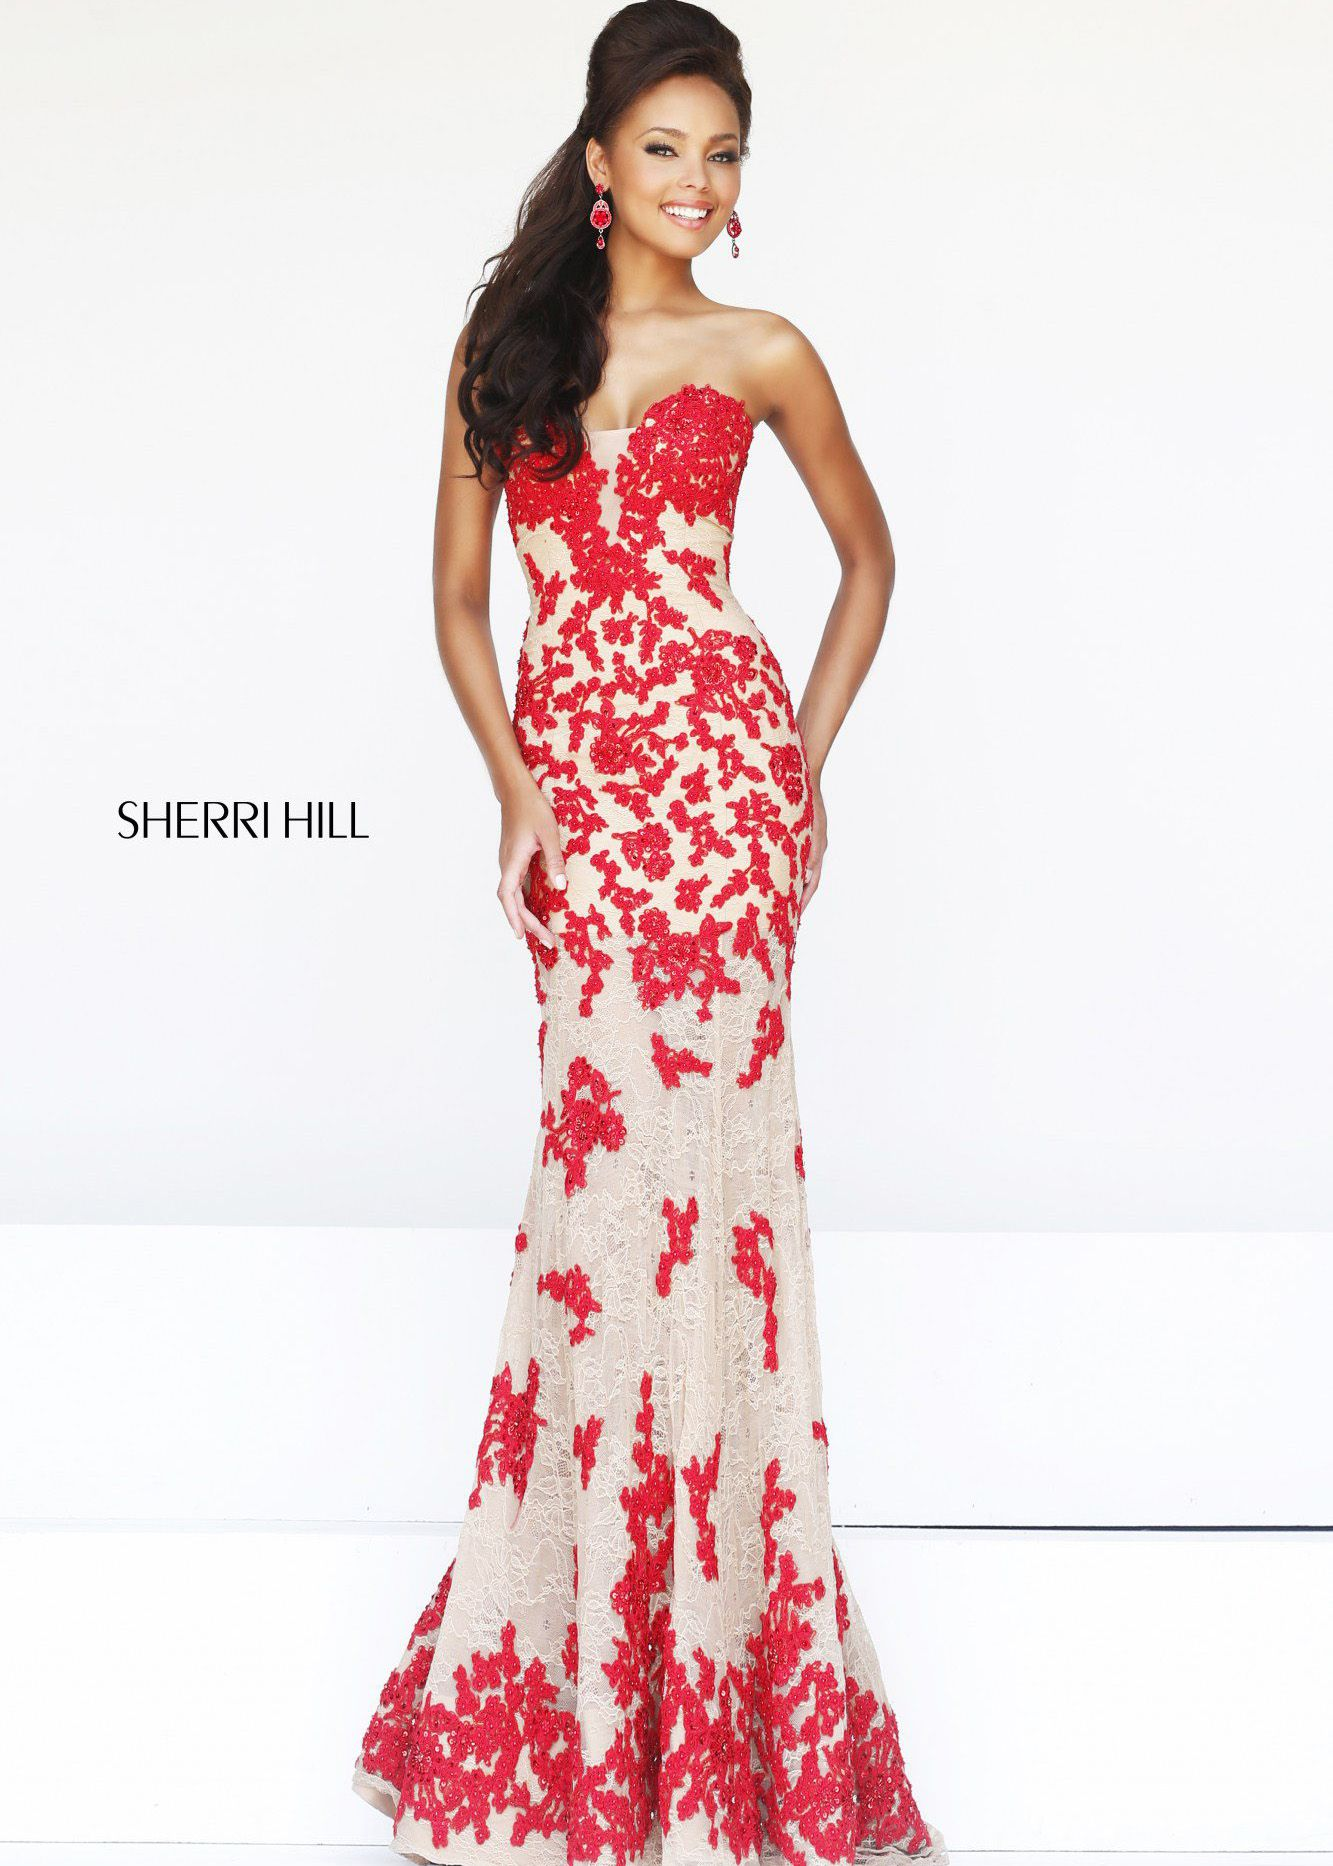 Sherri Hill 11120 - Nude/Red Strapless Lace Dress - RissyRoos.com ...